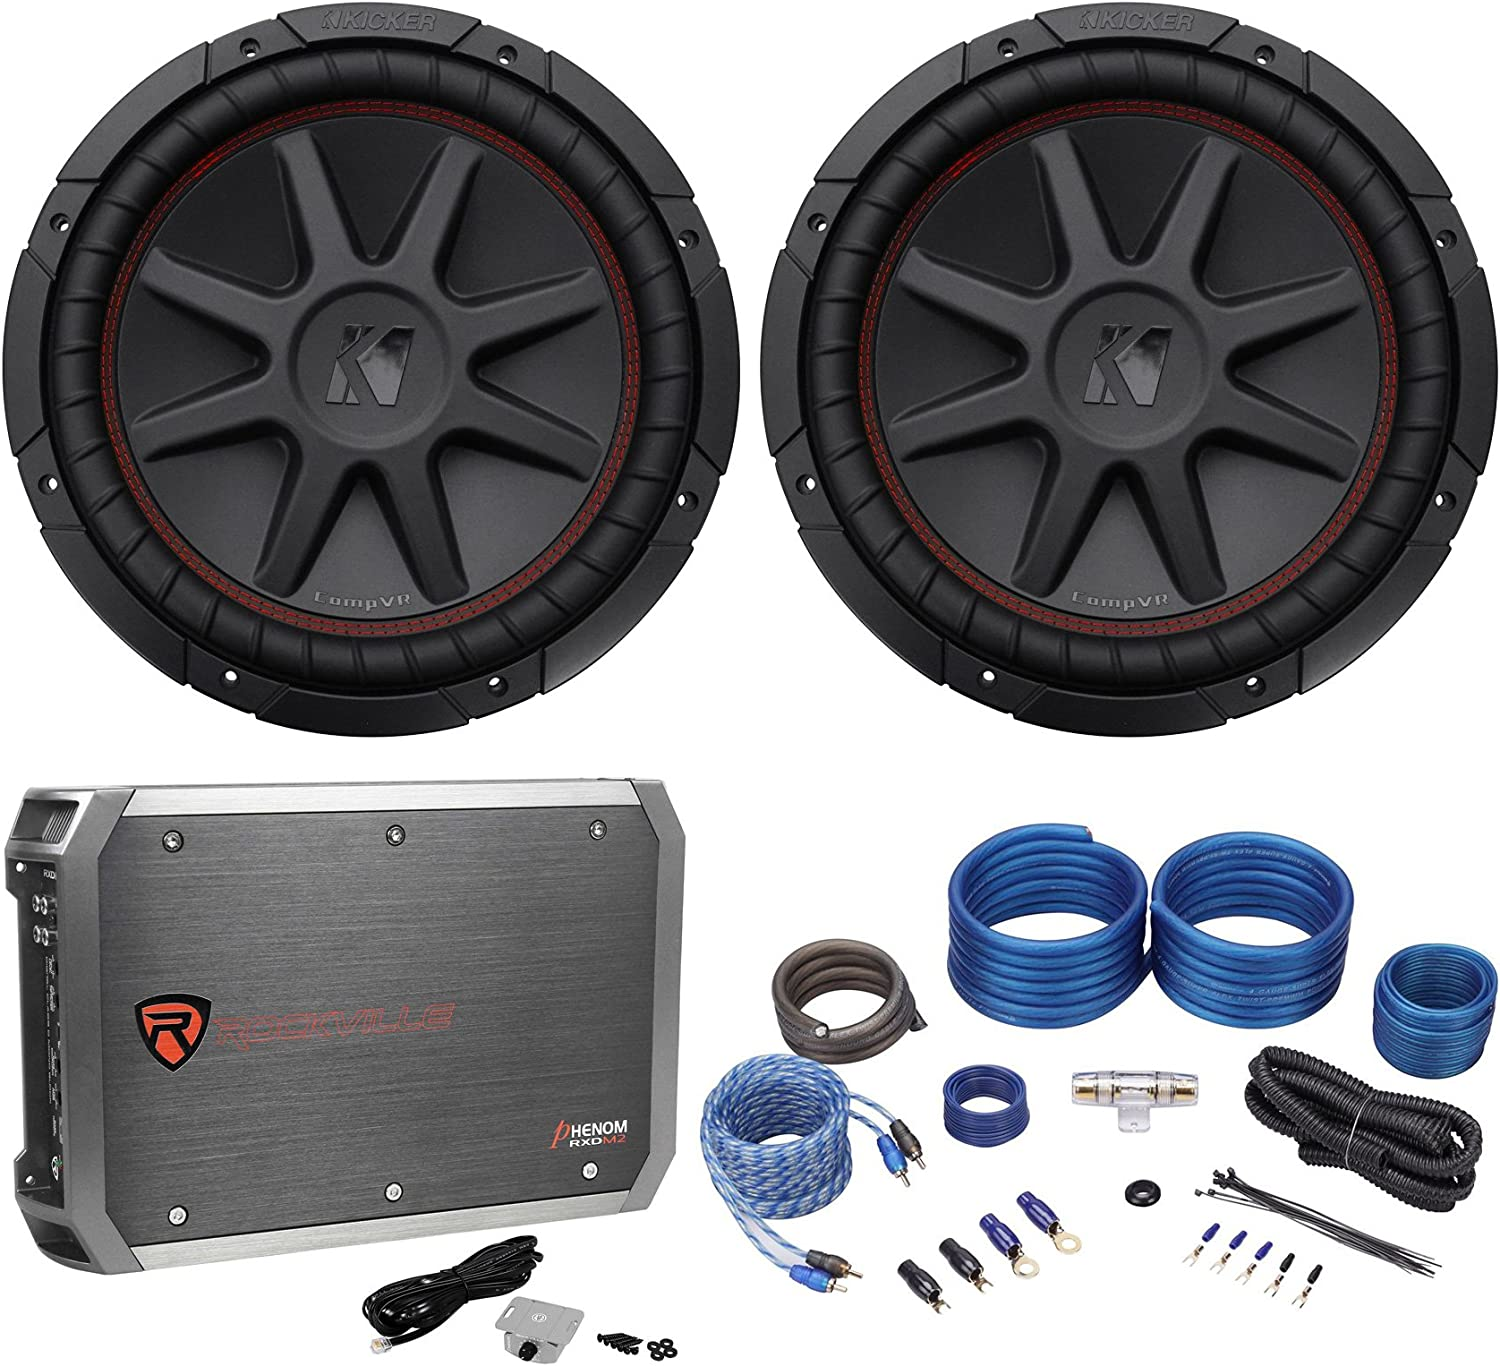 "(2) Kicker 43CVR124 COMPVR 1600W 12"" Car Subwoofers Subs+Mono Amplifier+Amp Kit 811Xfg87k4LSL1500_"